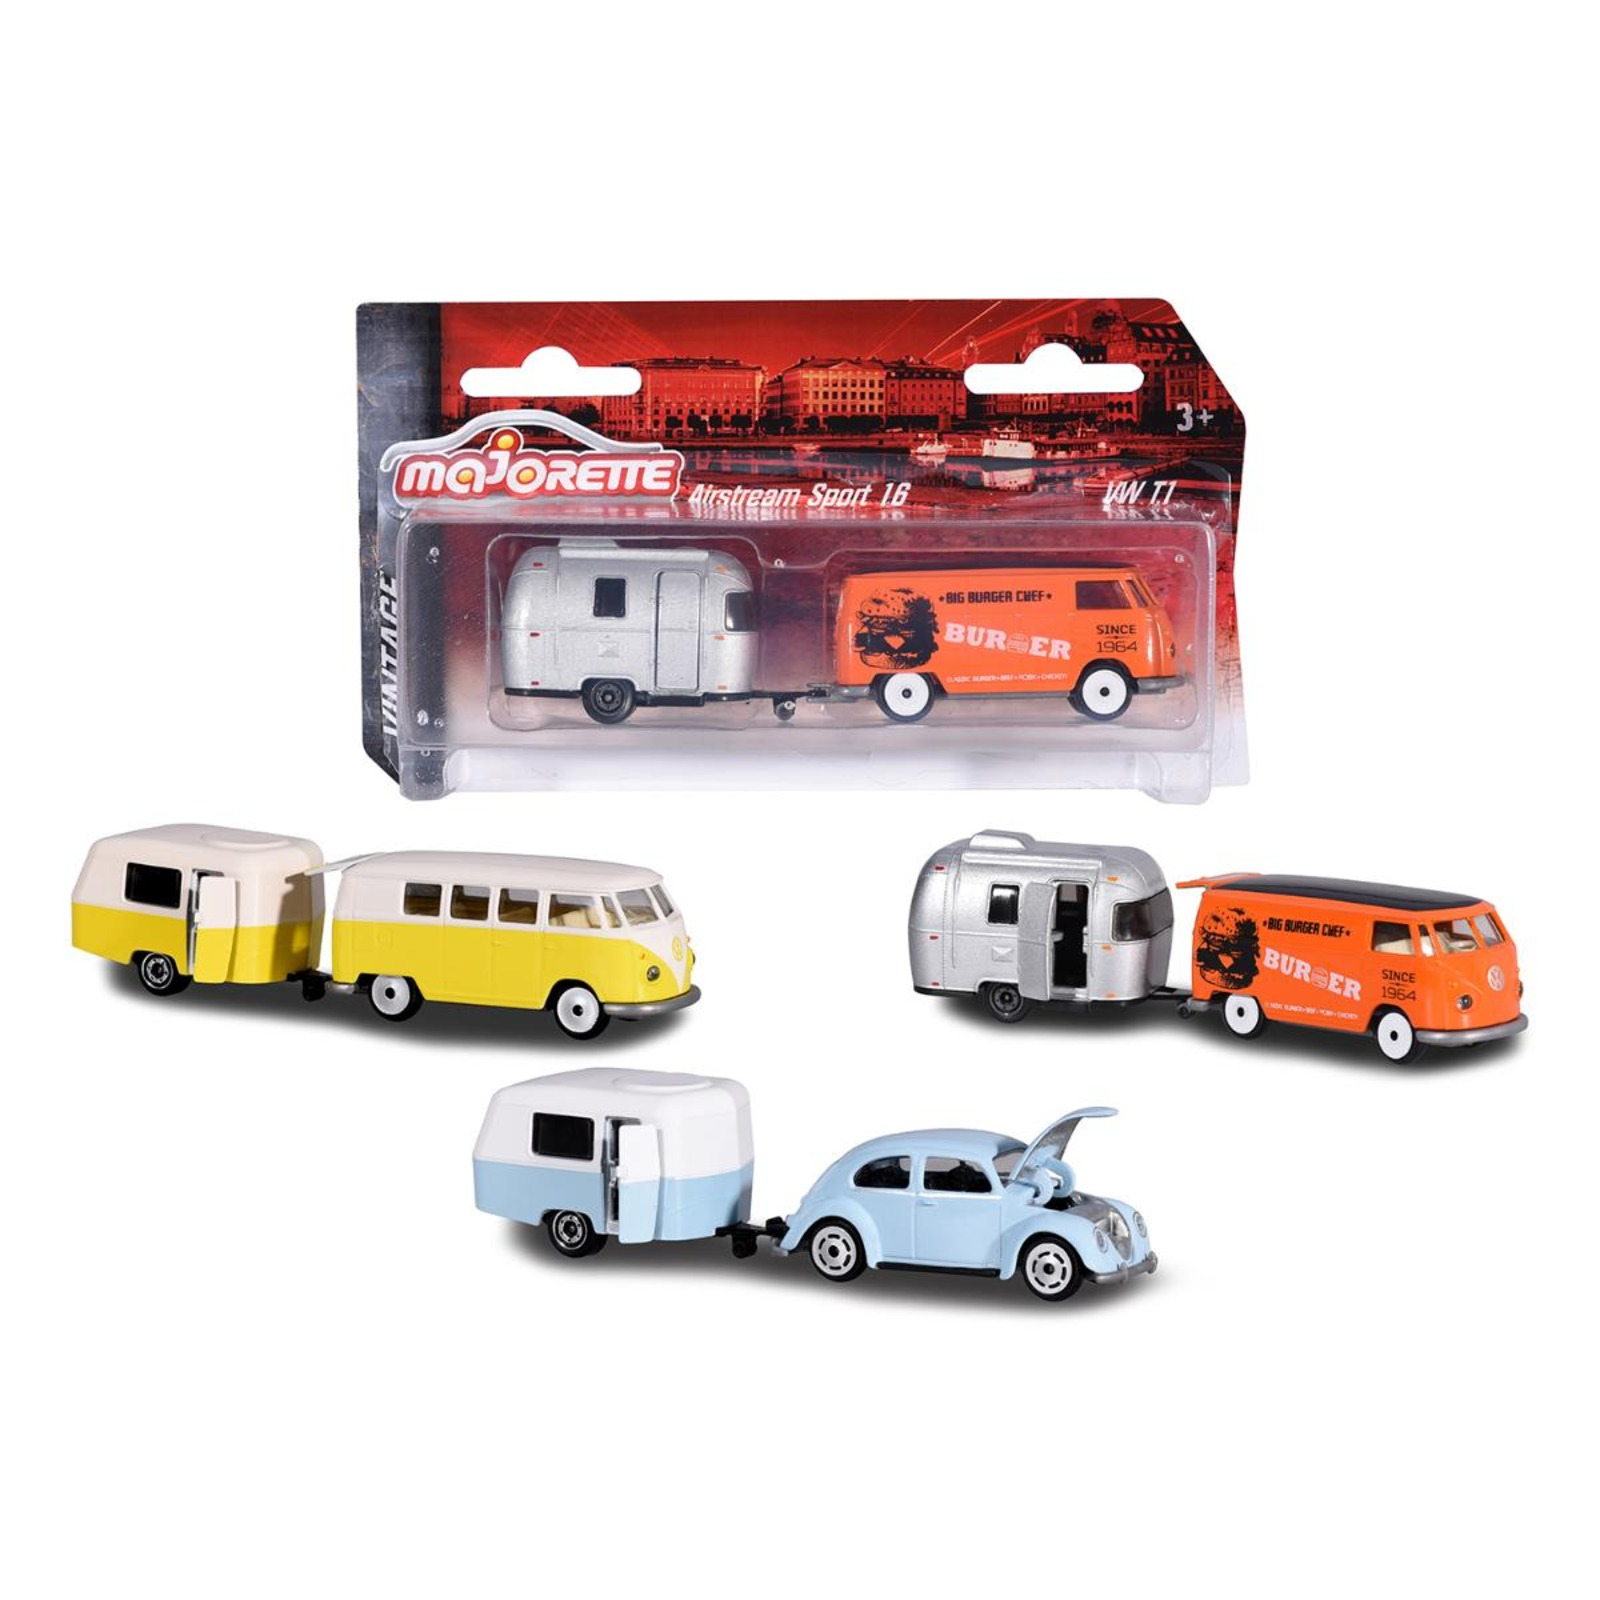 Majorette Vintage Trailer Assortment